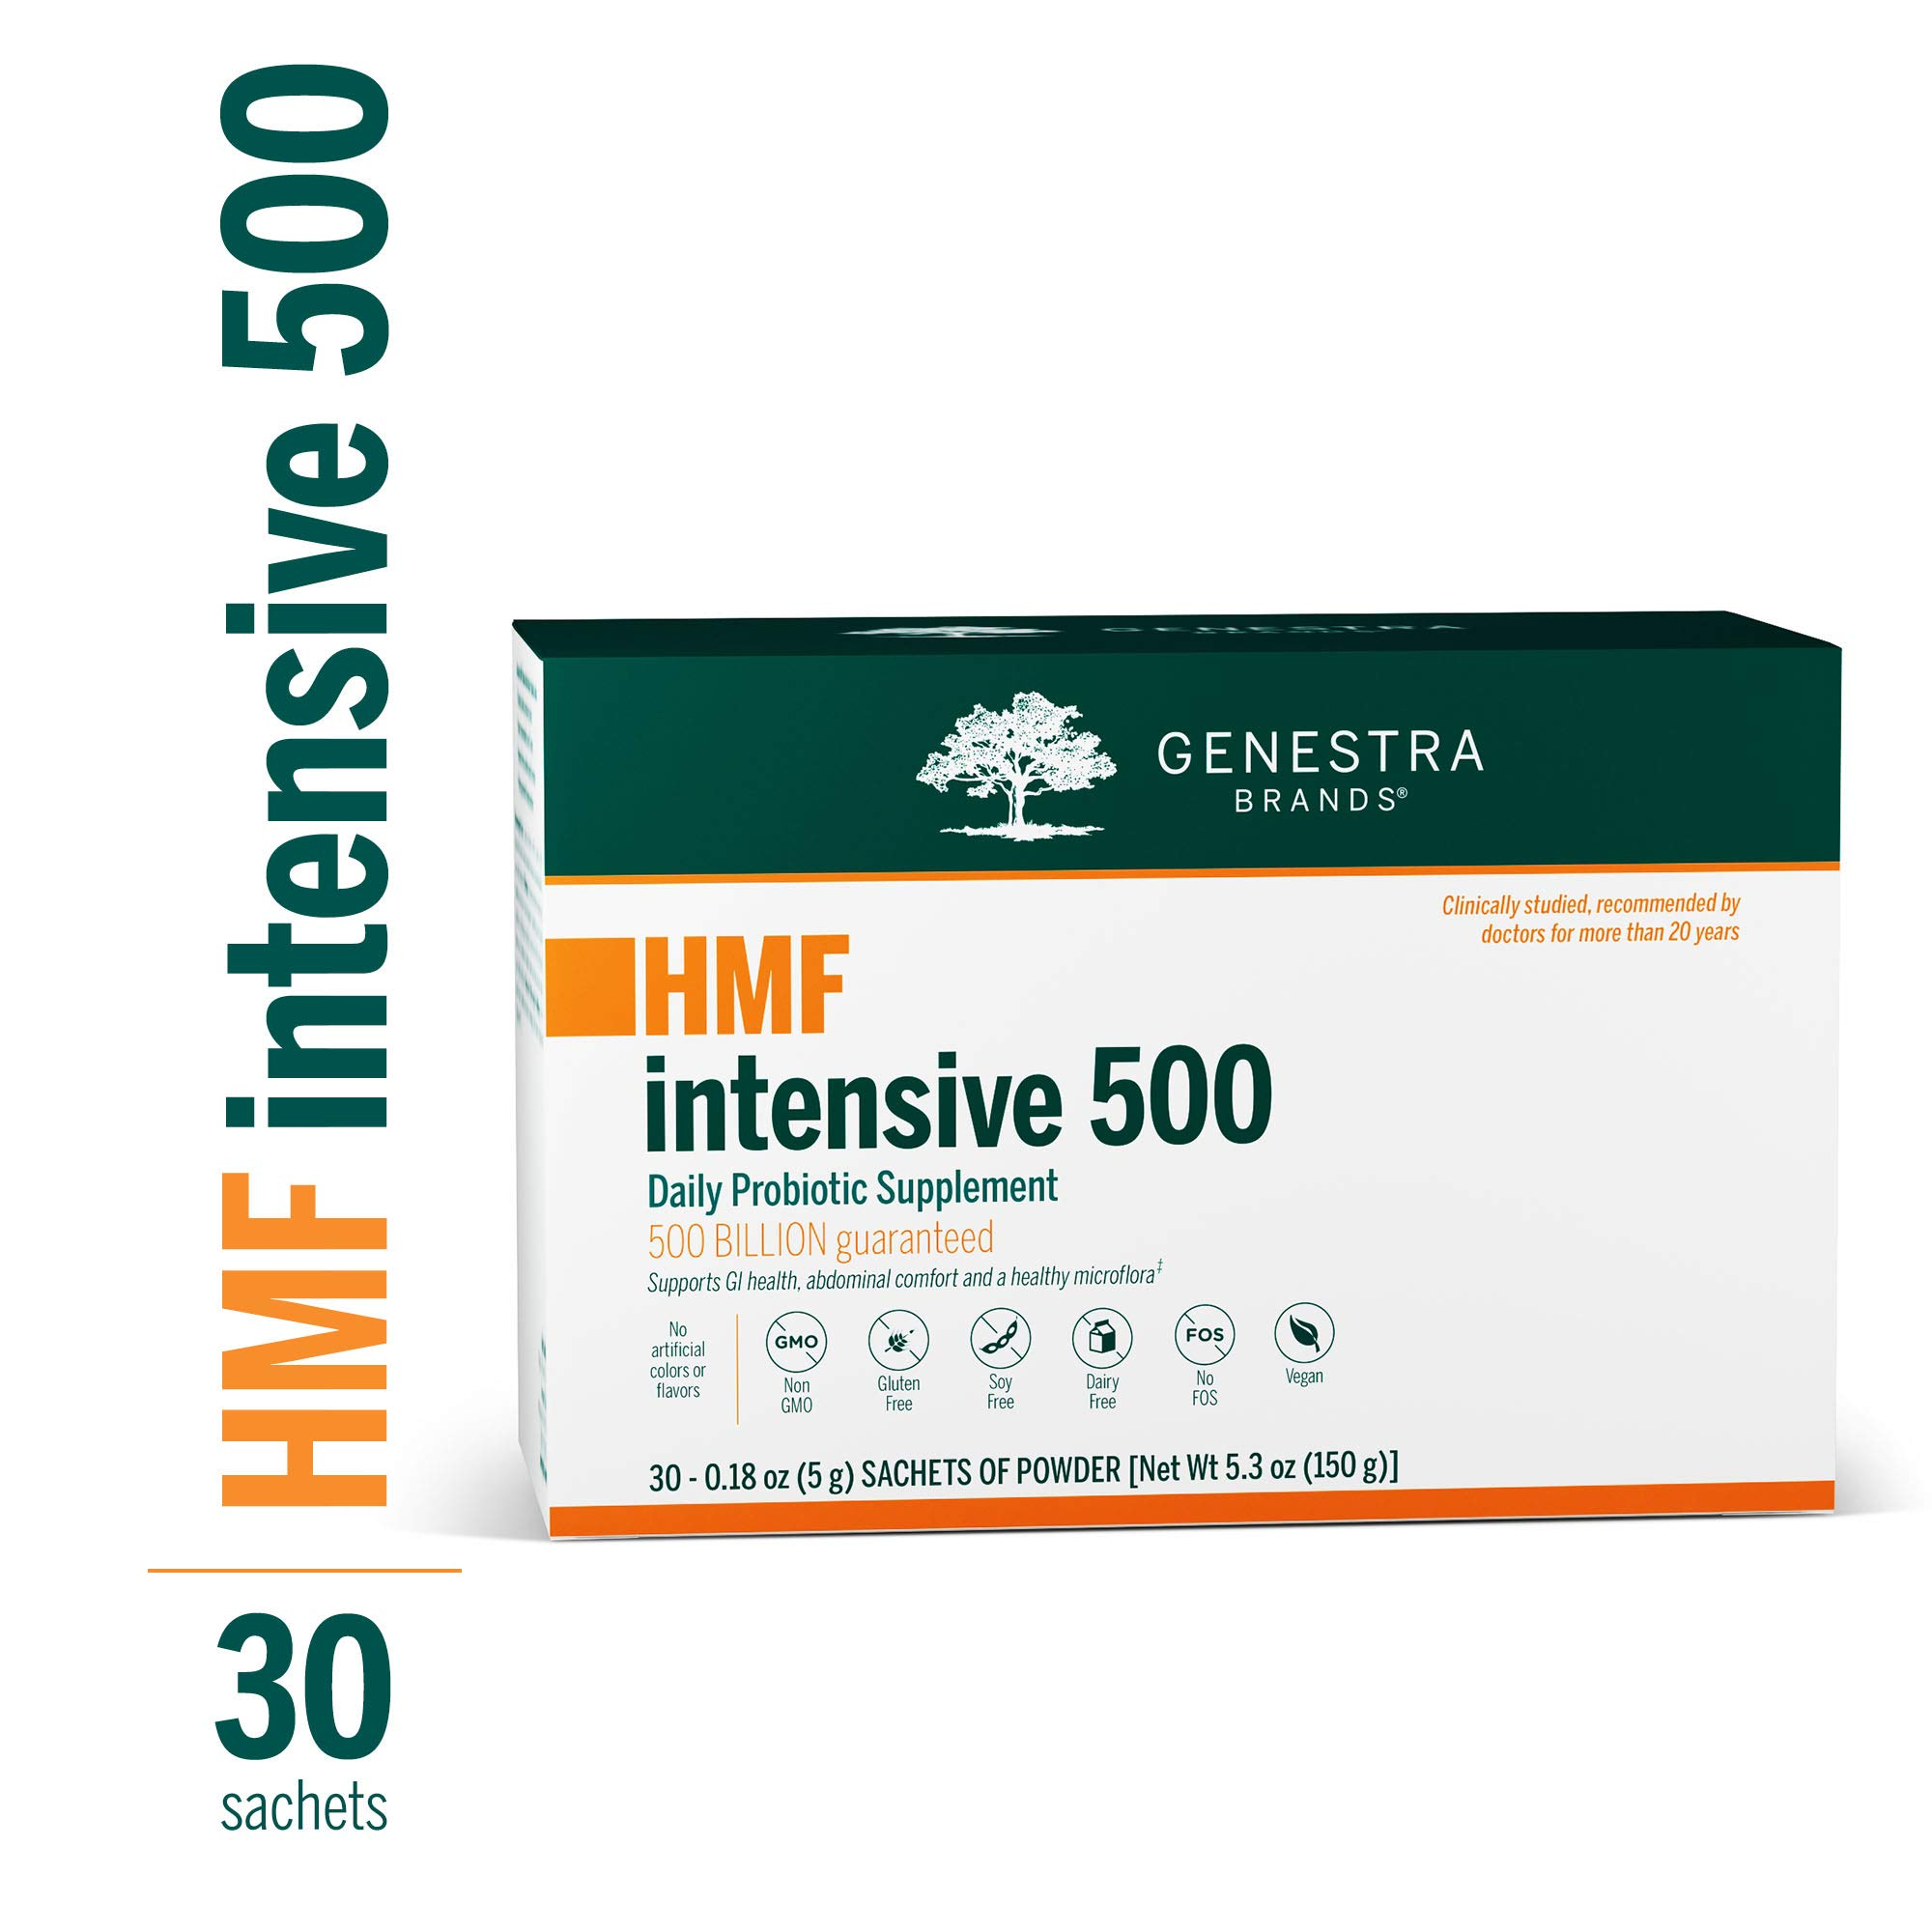 Genestra Brands - HMF Intensive 500 - Highly Concentrated Probiotic Supplement to Support Gastrointestinal Health - 5 Gram Sachets of Powder - 30 Count